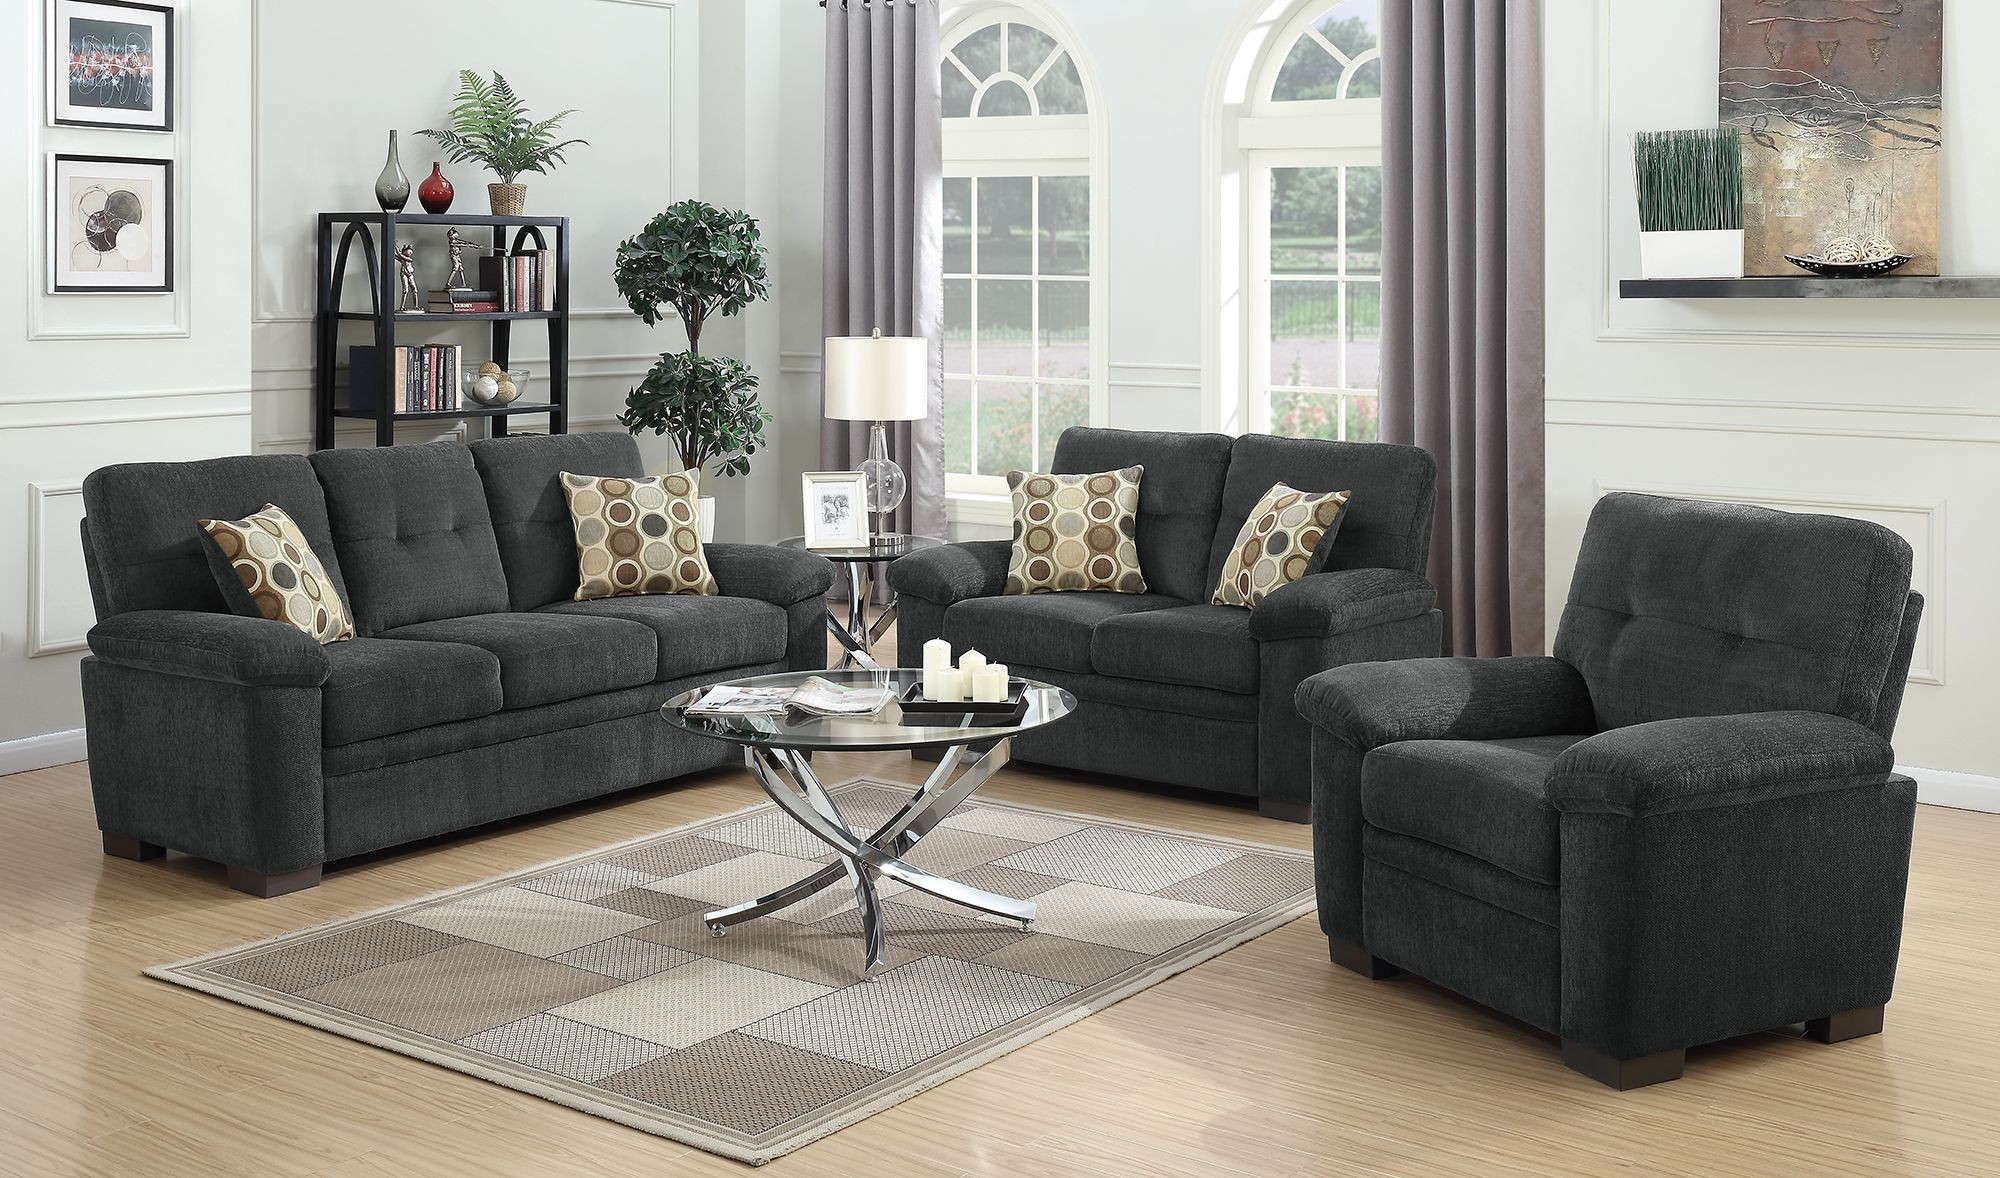 charcoal living room furniture fairbairn charcoal living room set 506584 85 coaster 12794